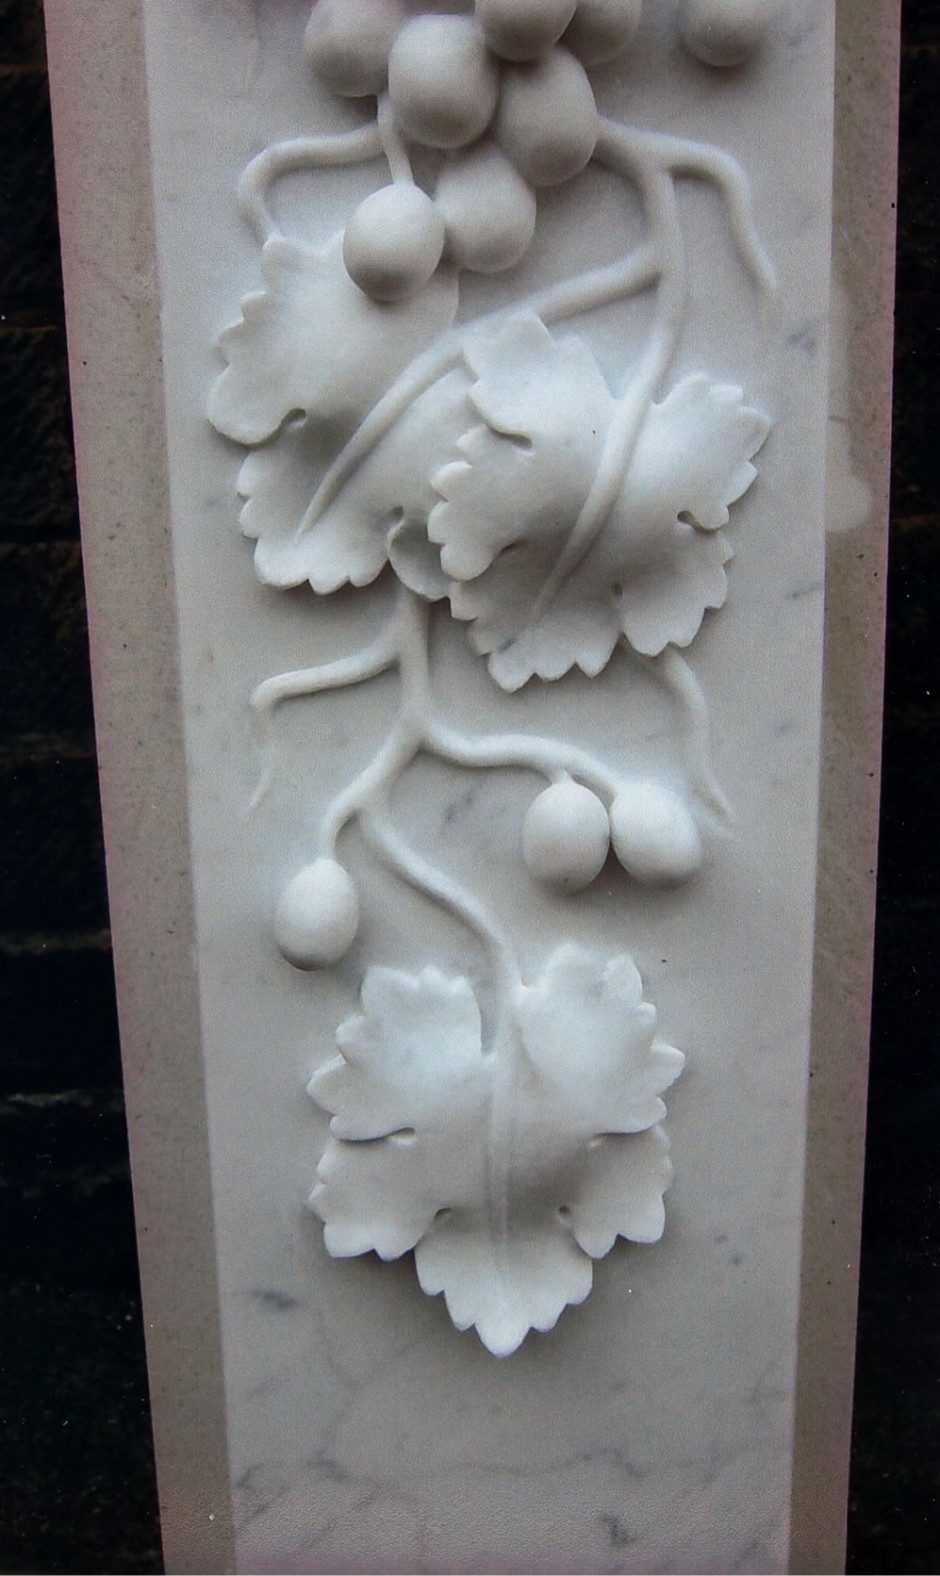 Grapes On The Vine With Vine Leaves Carved In Marble. - marble, grapes, vine, grape leaf, leaves